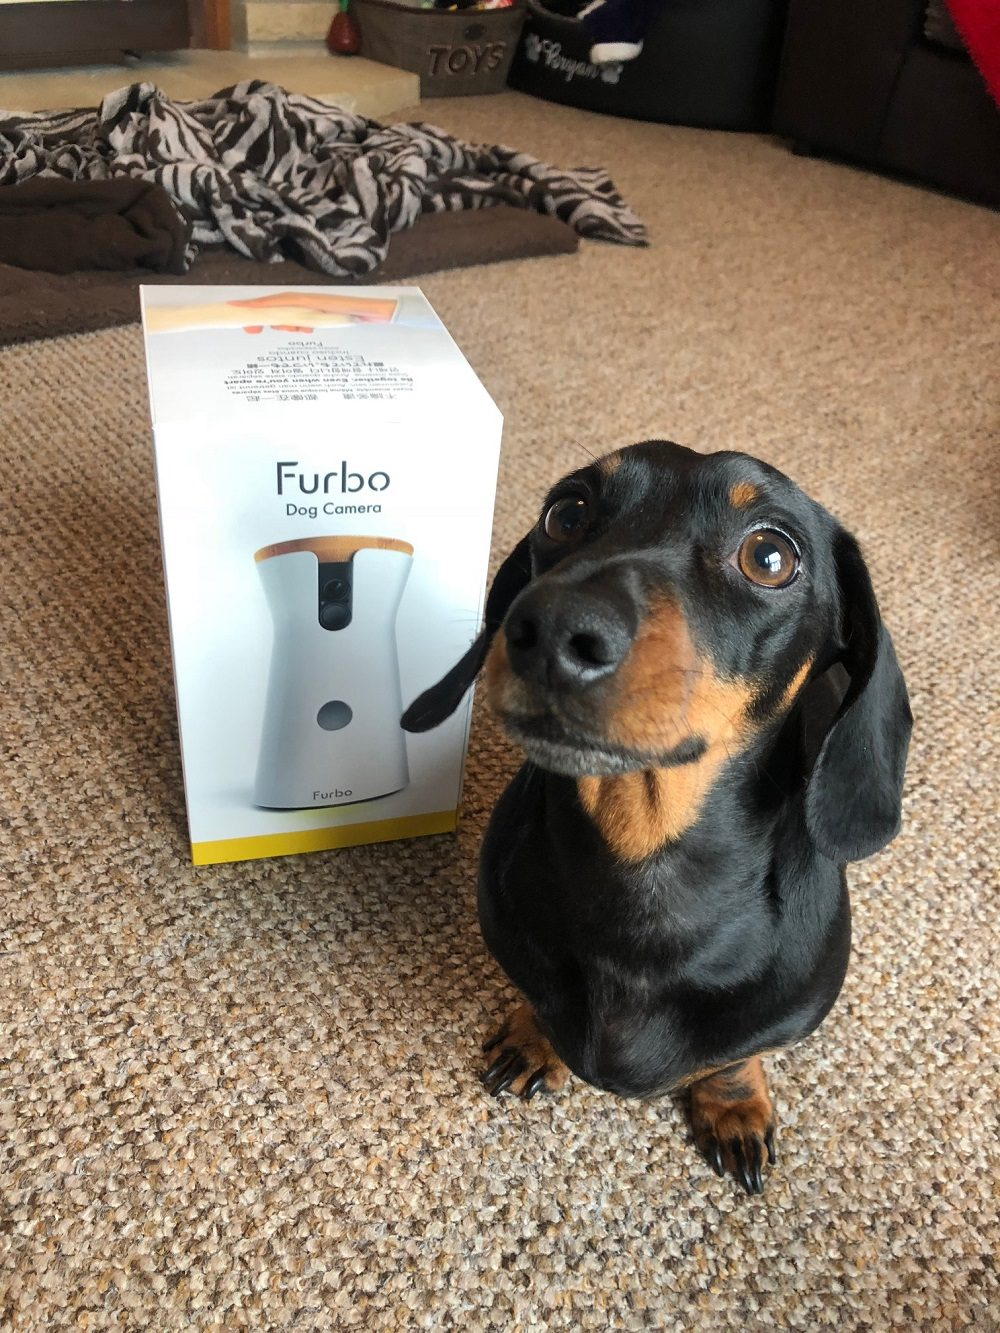 Furbo Dog Camera Review: A Good Way to Keep an Eye on Your Pets?